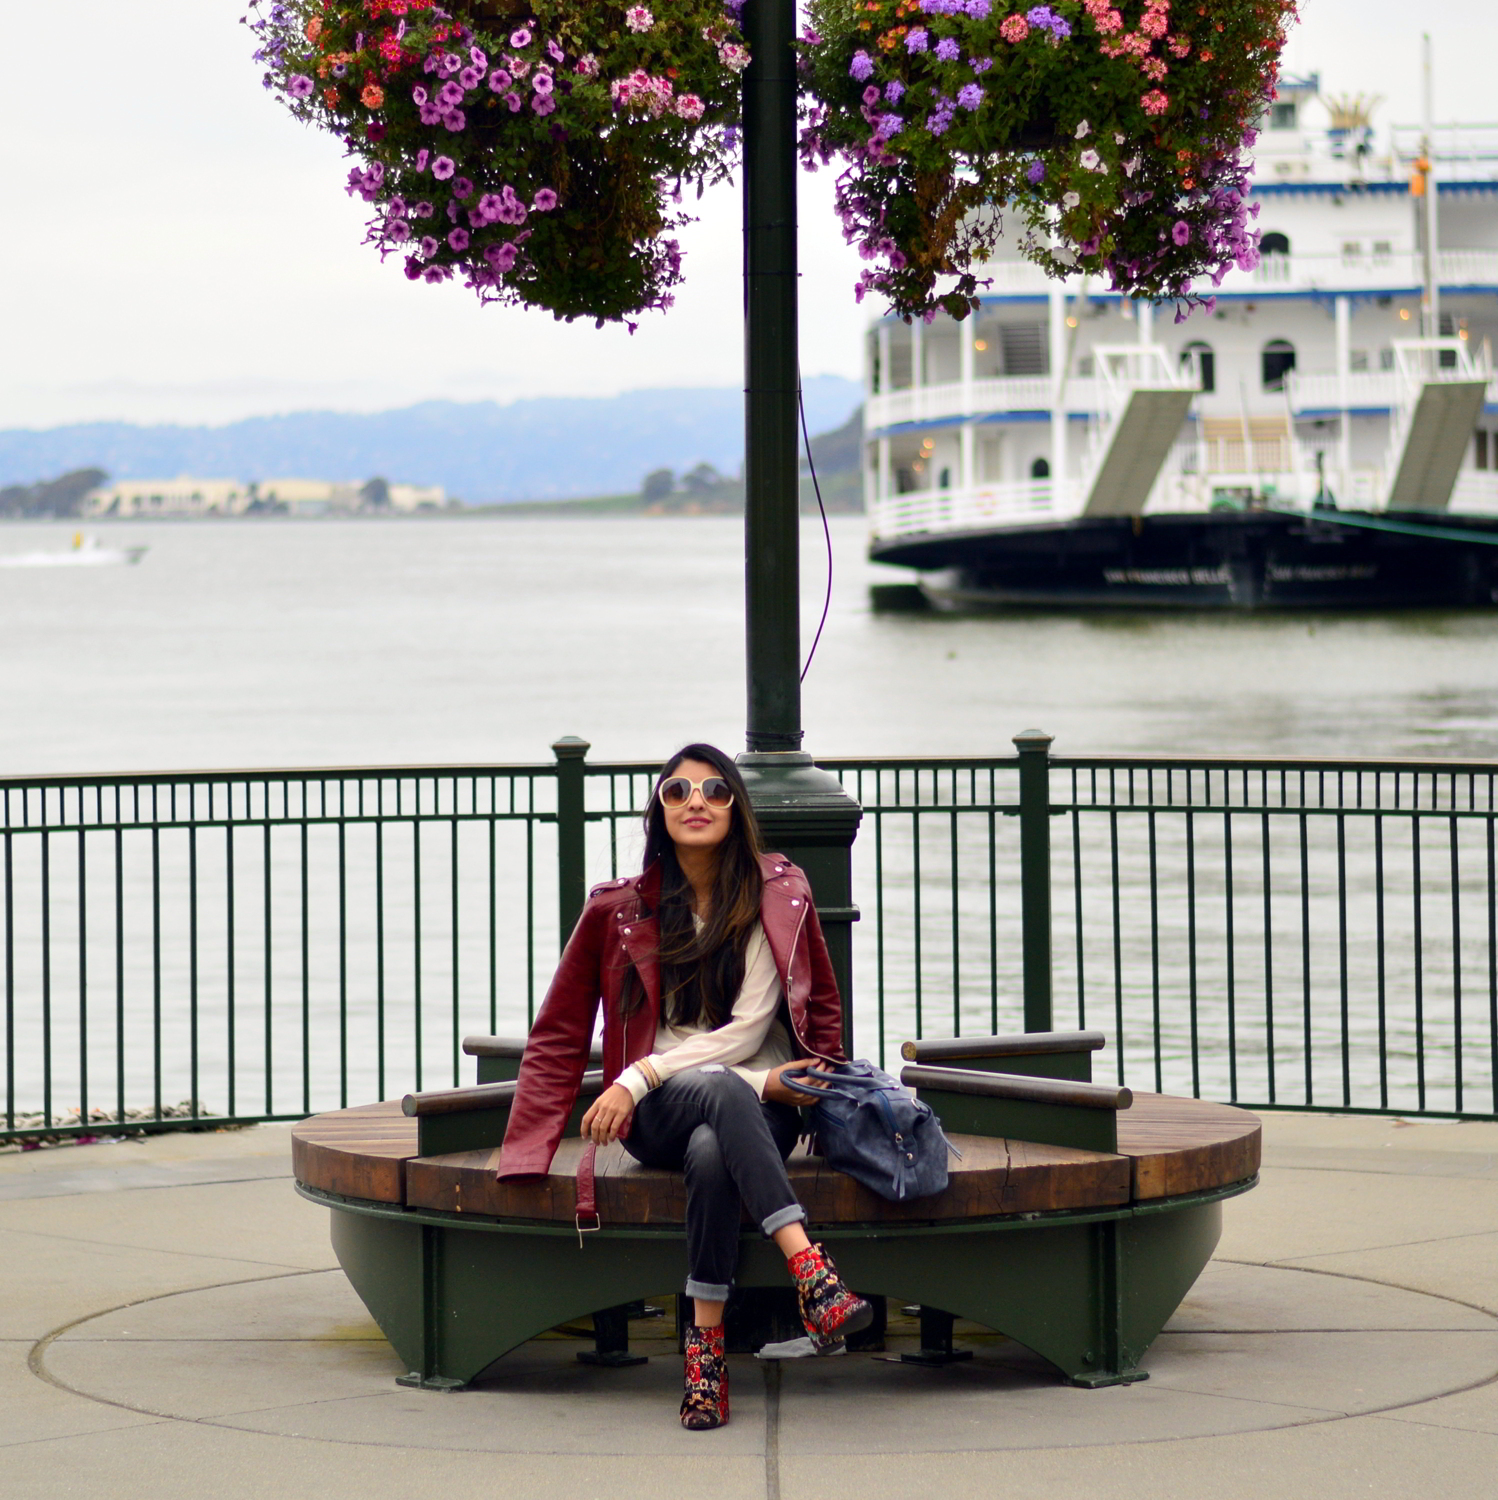 spring-layers-basics-san-francisco-floral-velvet-boots-blogger-travel-style 6